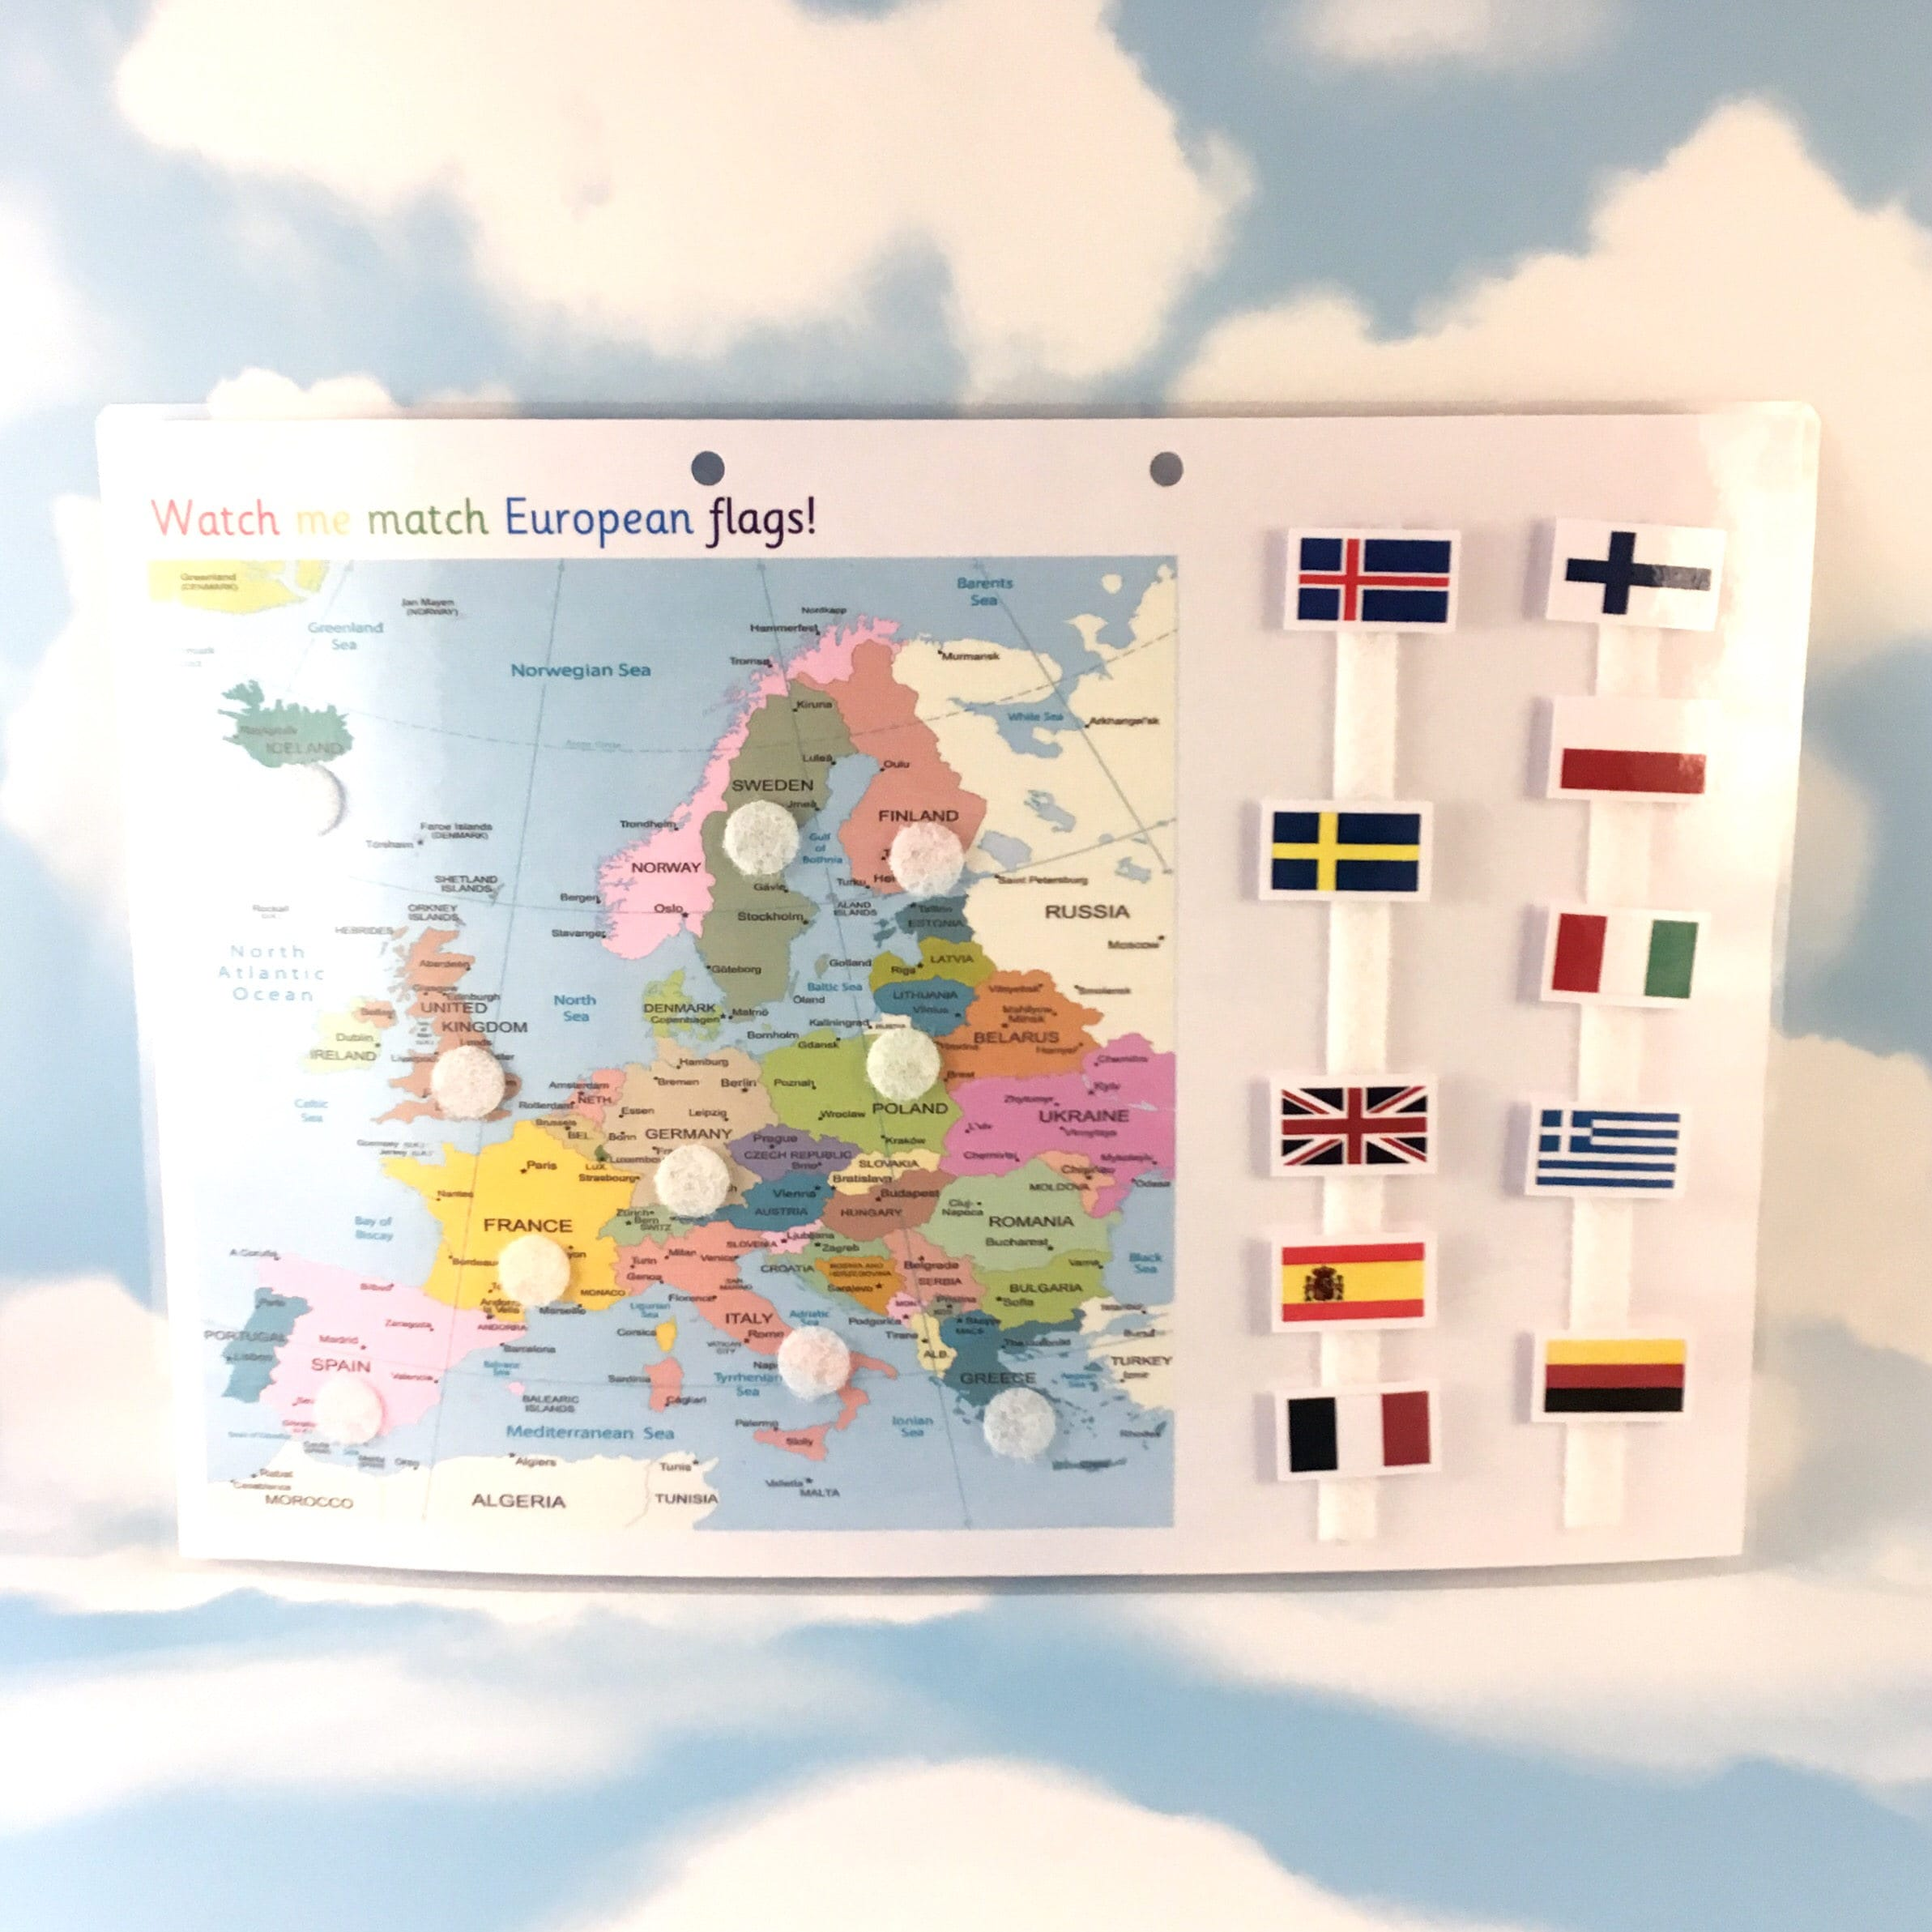 Map Of France For Ks2.European Flags And Map Ks2 Matching Game Geography Year 3 Visual Learner Removable Pieces Matching Homework Resource